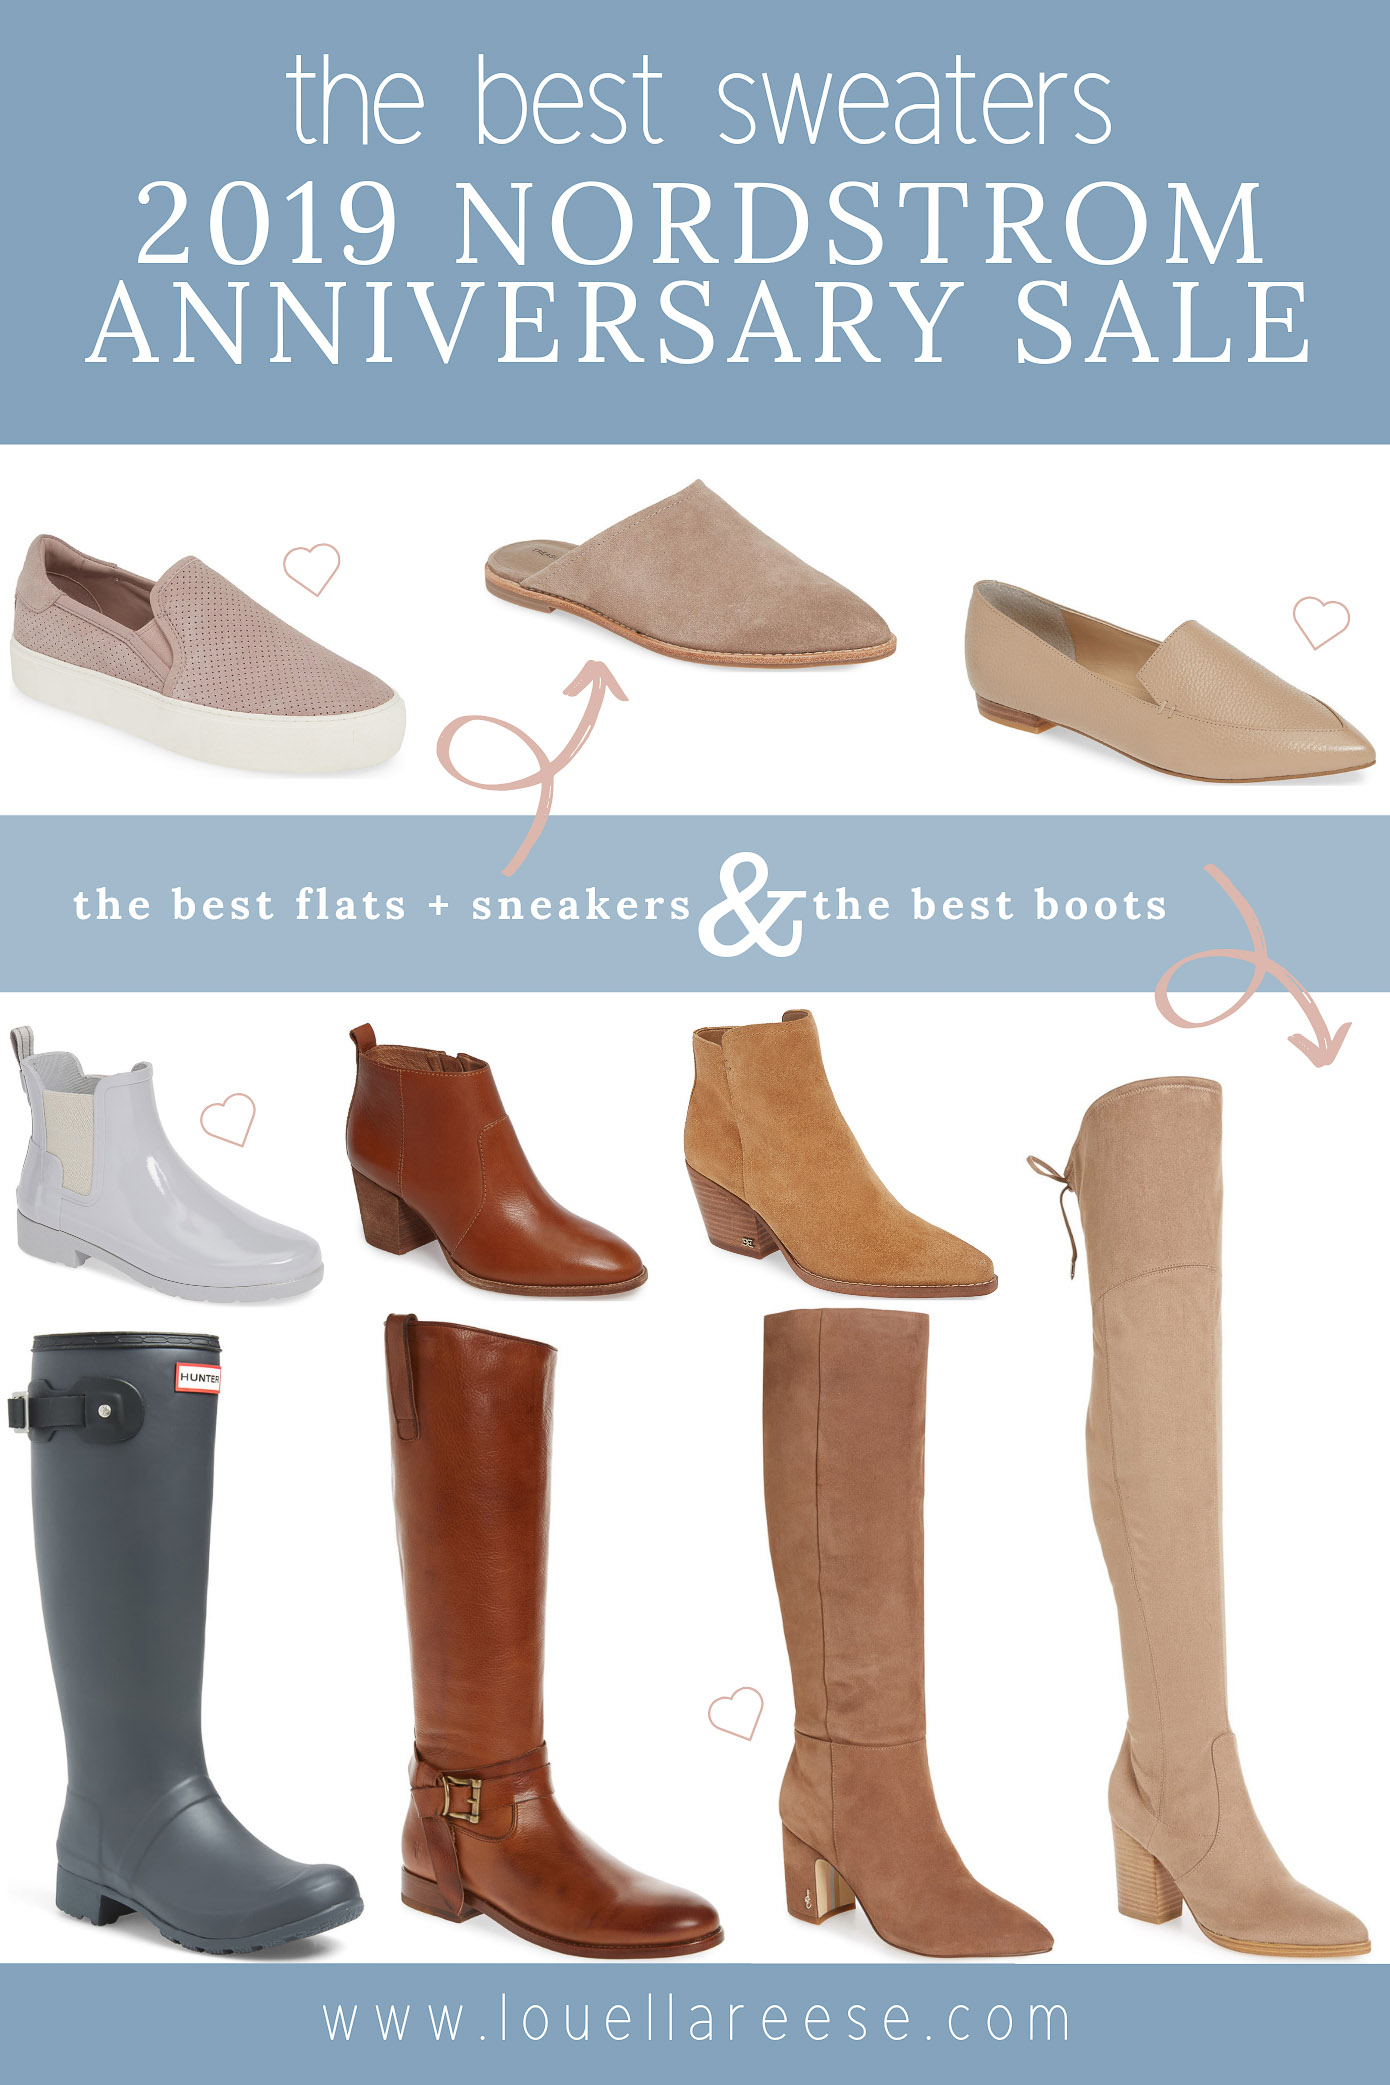 2019 Nordstrom Anniversary Sale Best Shoes | The BEST Shoes from the 2019 Nordstrom Anniversary Sale | Louella Reese